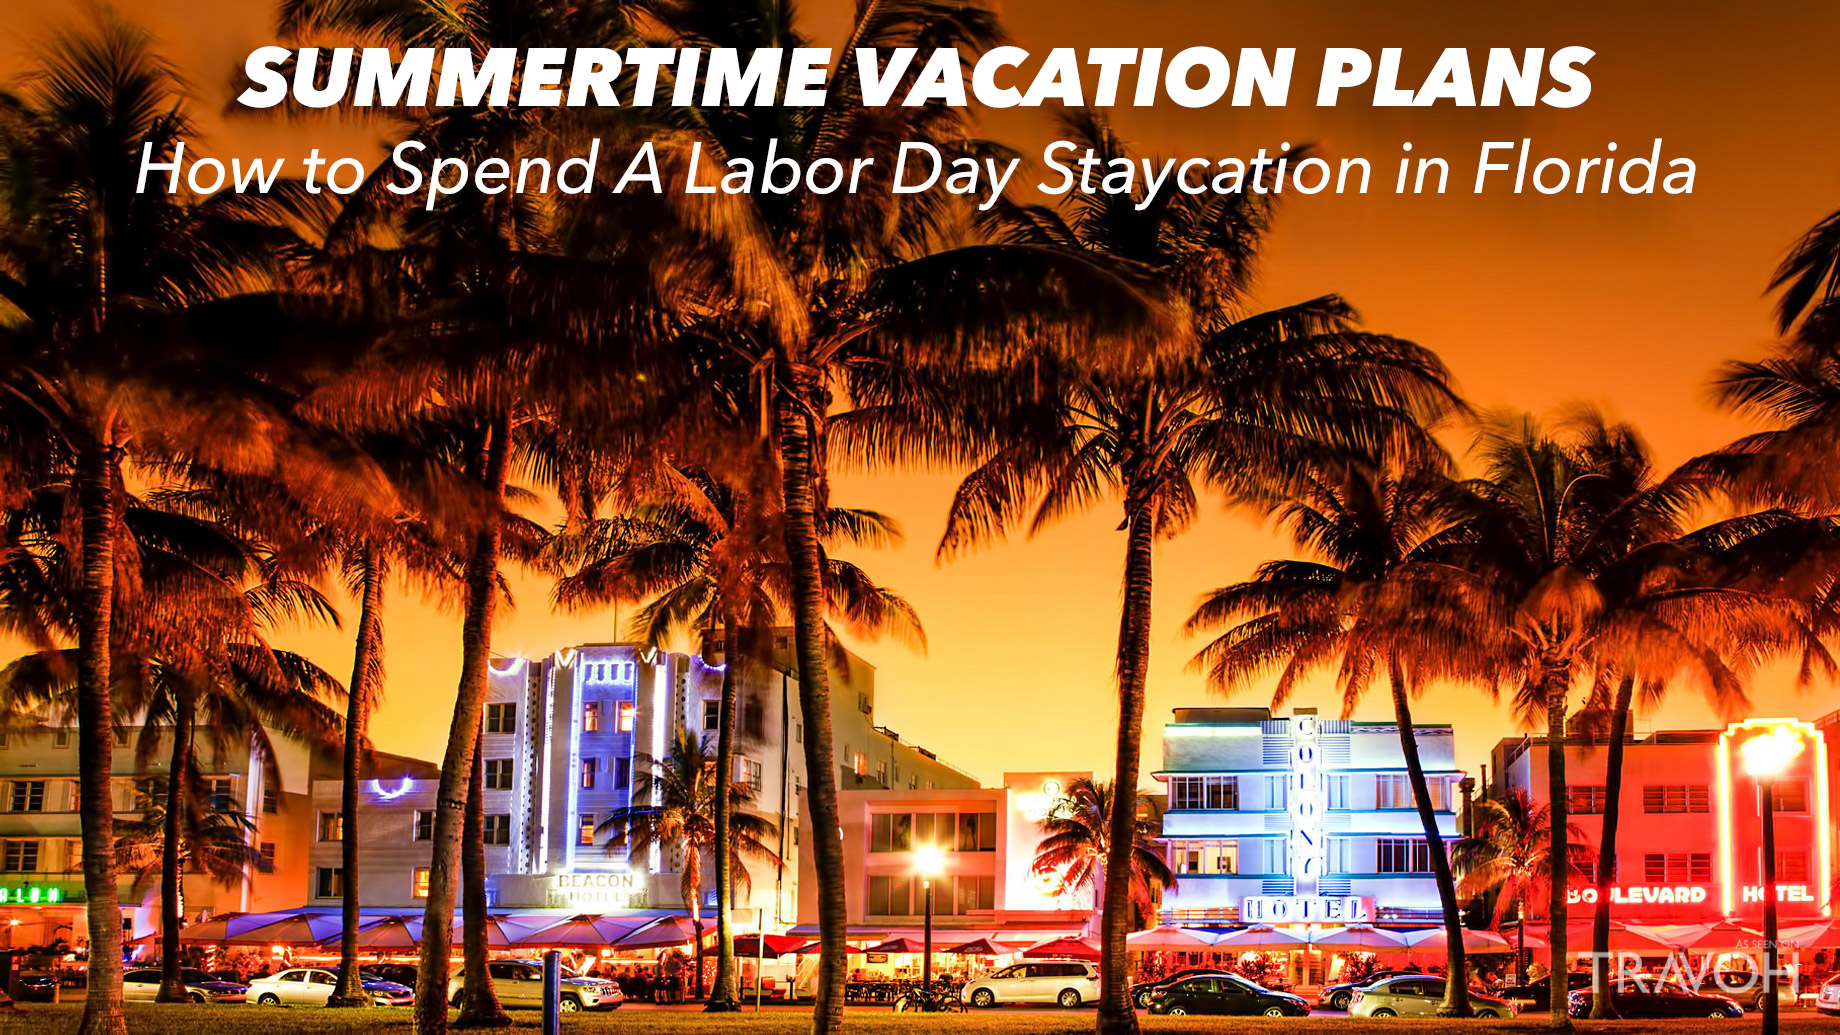 Summertime Vacation Plans - How to Spend A Labor Day Staycation in Florida